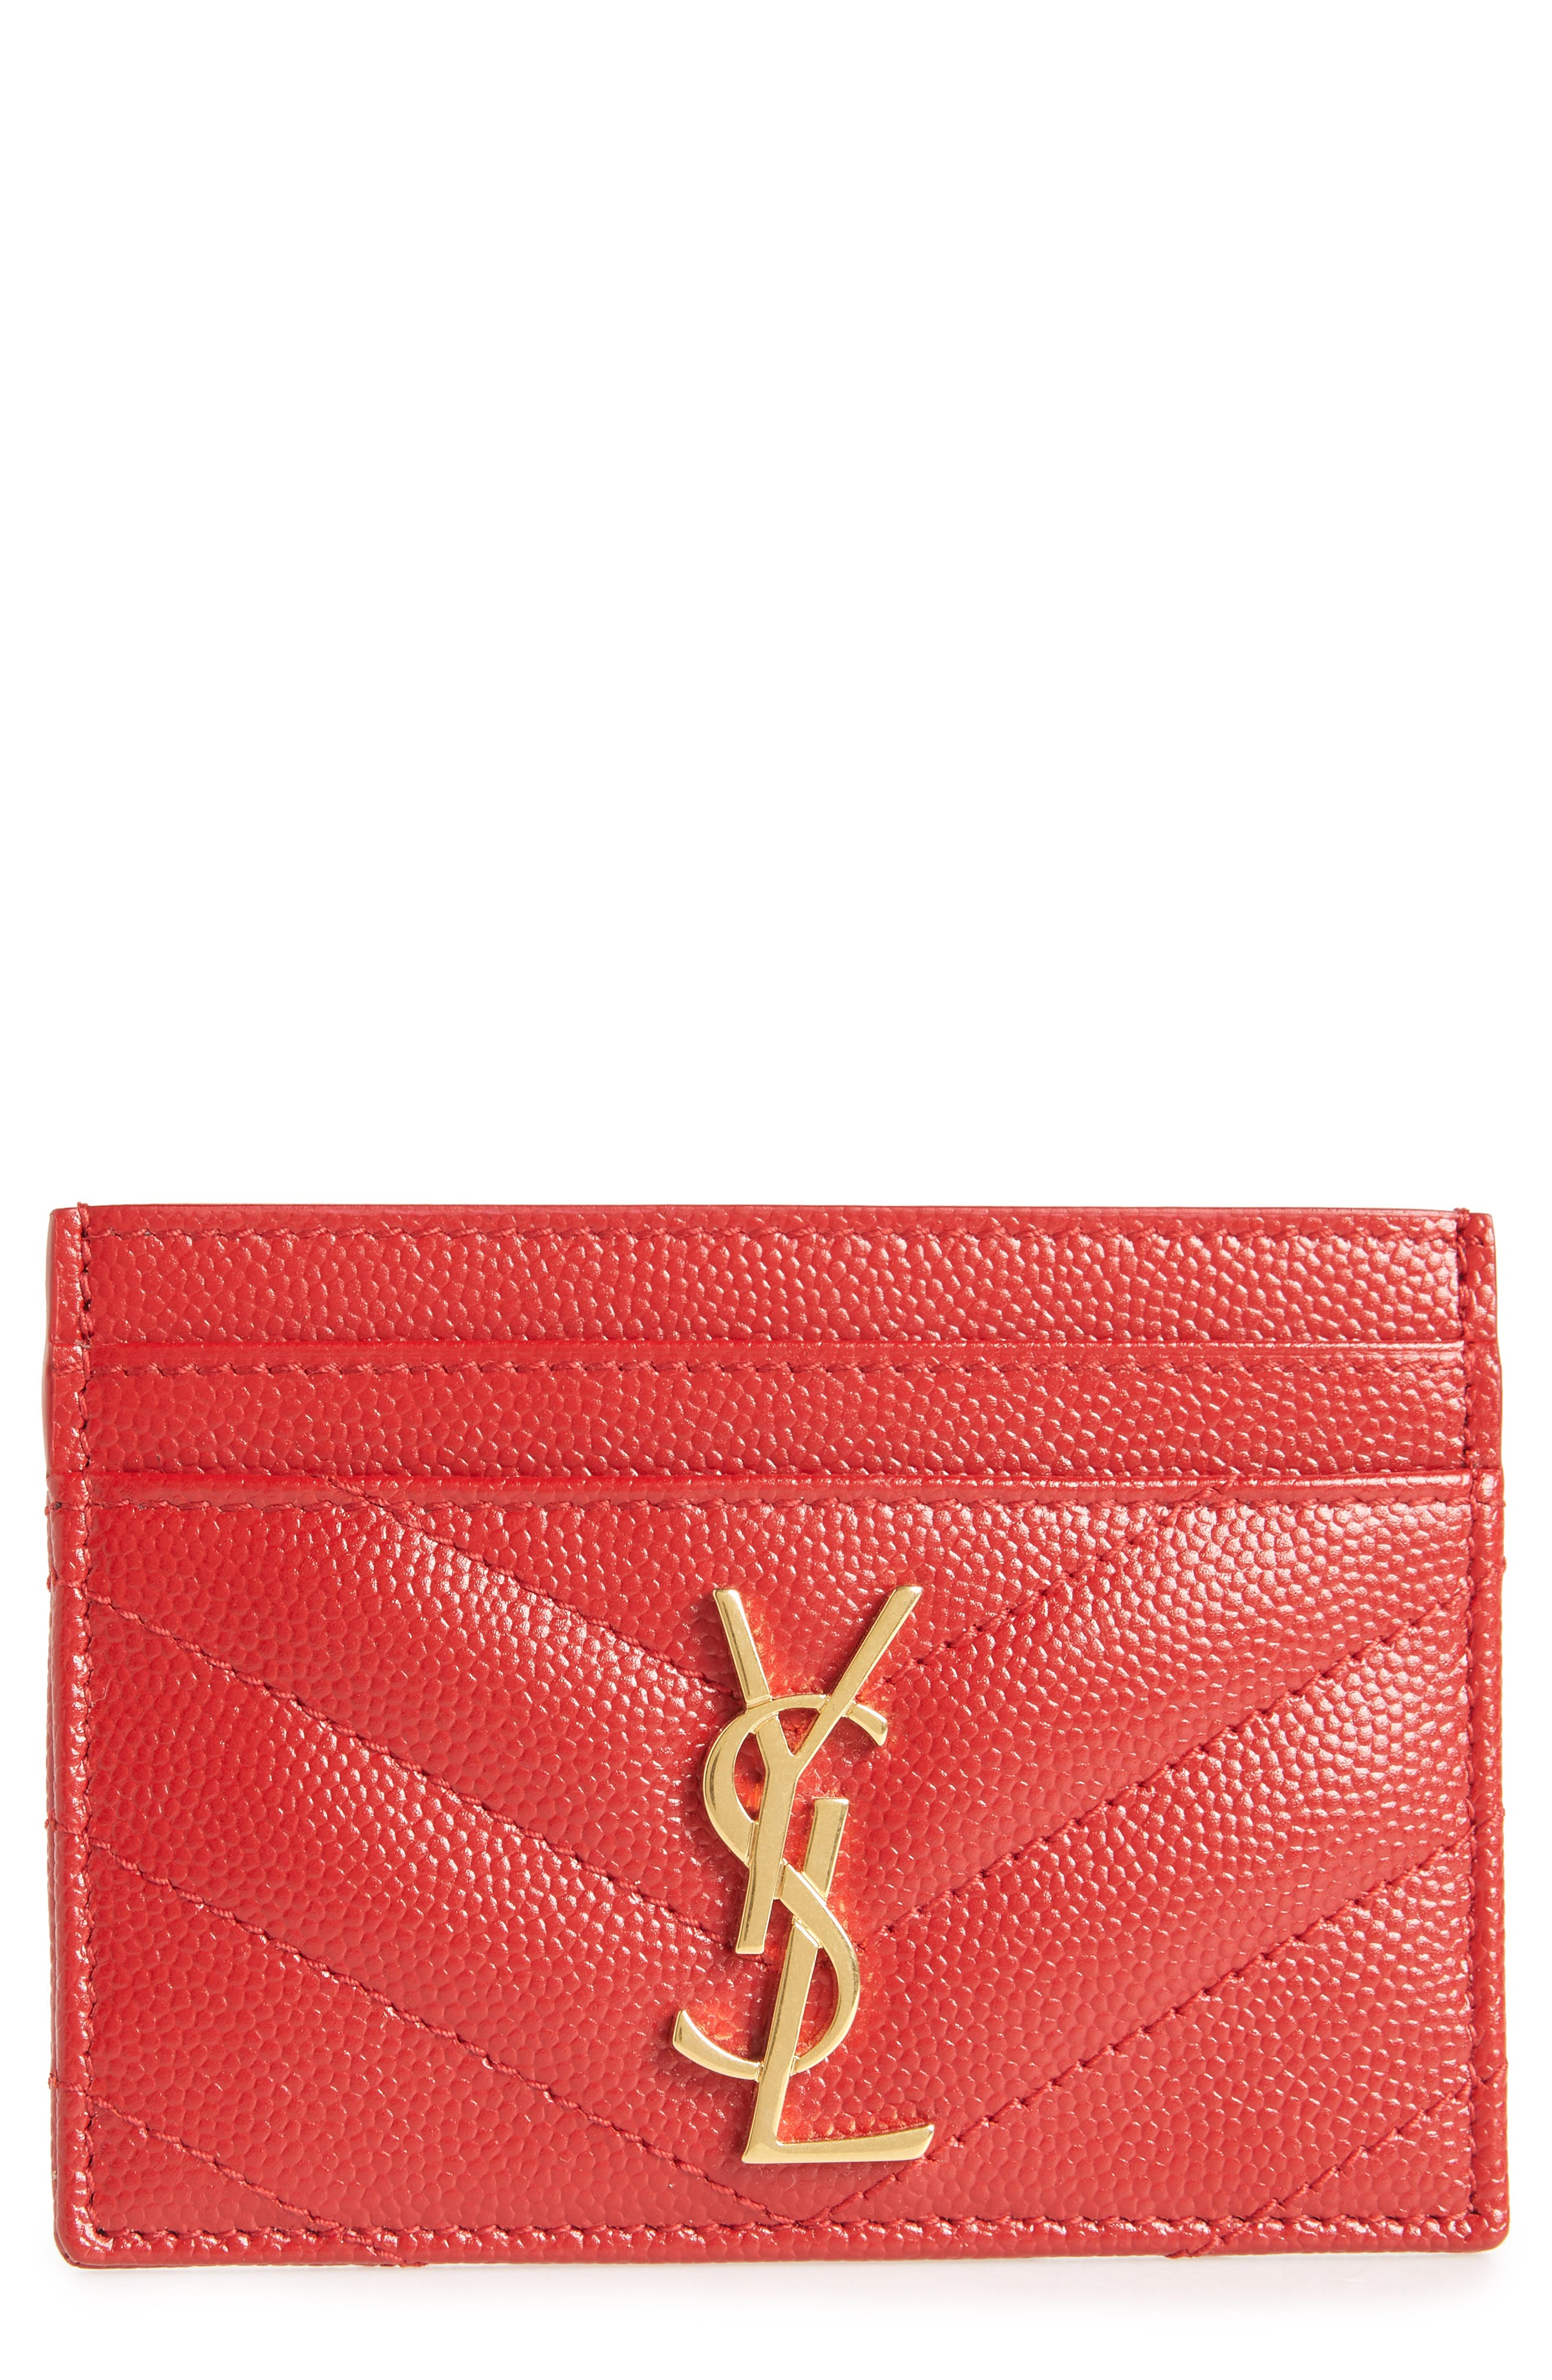 Monogram Quilted Leather Credit Card Case,                         Main,                         color, ROUGE EROS